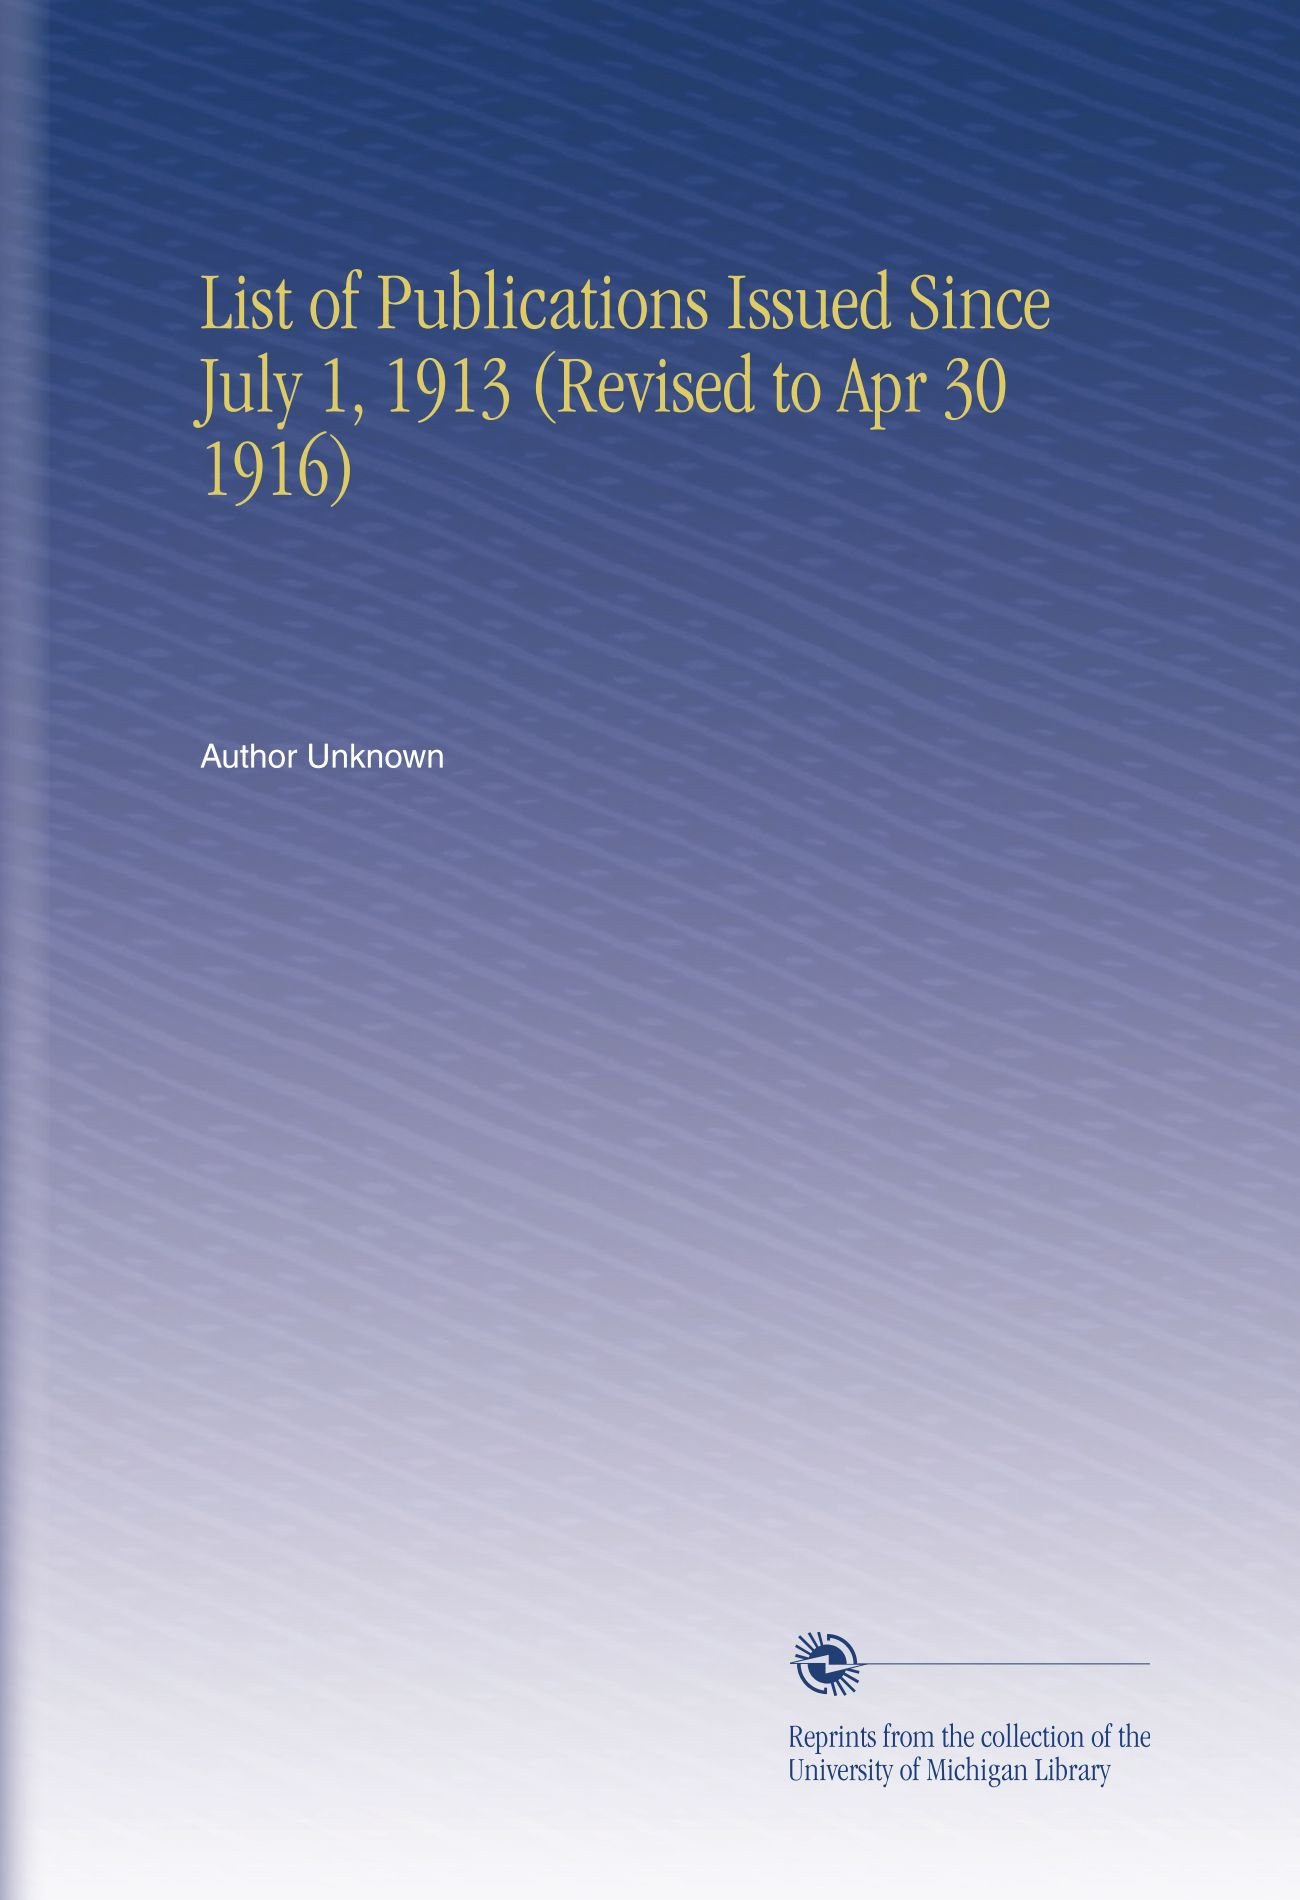 Download List of Publications Issued Since July 1, 1913 (Revised to Apr 30 1916) ebook